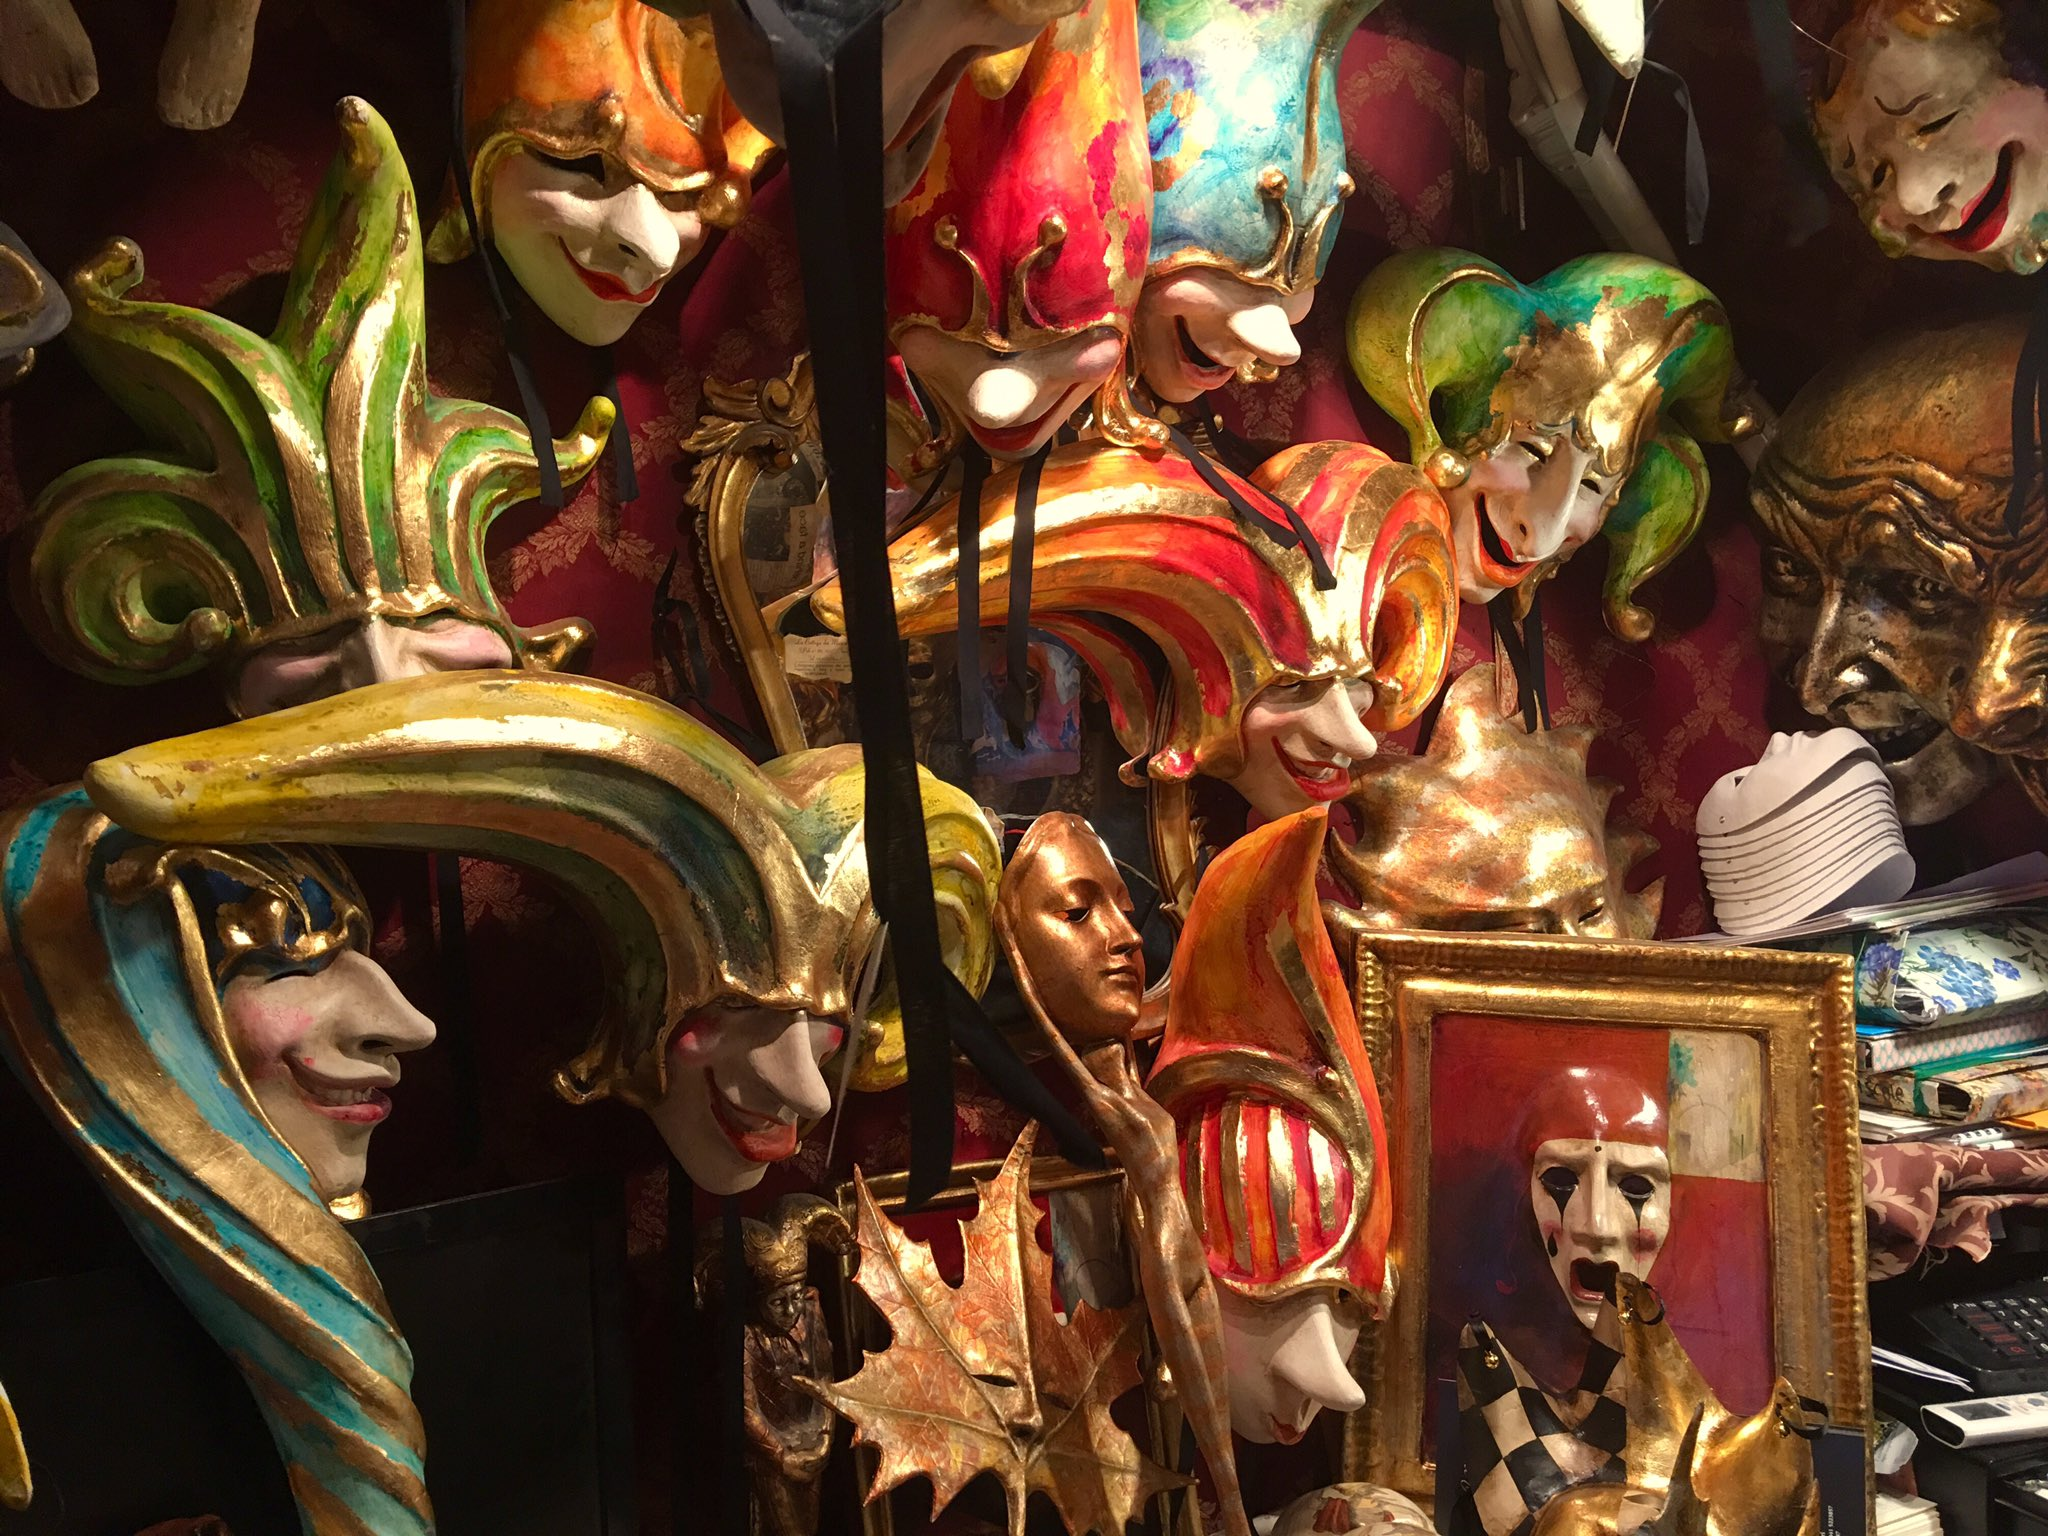 Odyssey Italy 2018, Tradition of masks started 13 century, Venetians hold celebrations Dec 26 until Lent & wear elaborate masks to conceal their identity. Only time when lower & upper classes mingled. Aristocrats & peasants, disguised by their masks, played out fantasies together https://t.co/L26pIMvqTN